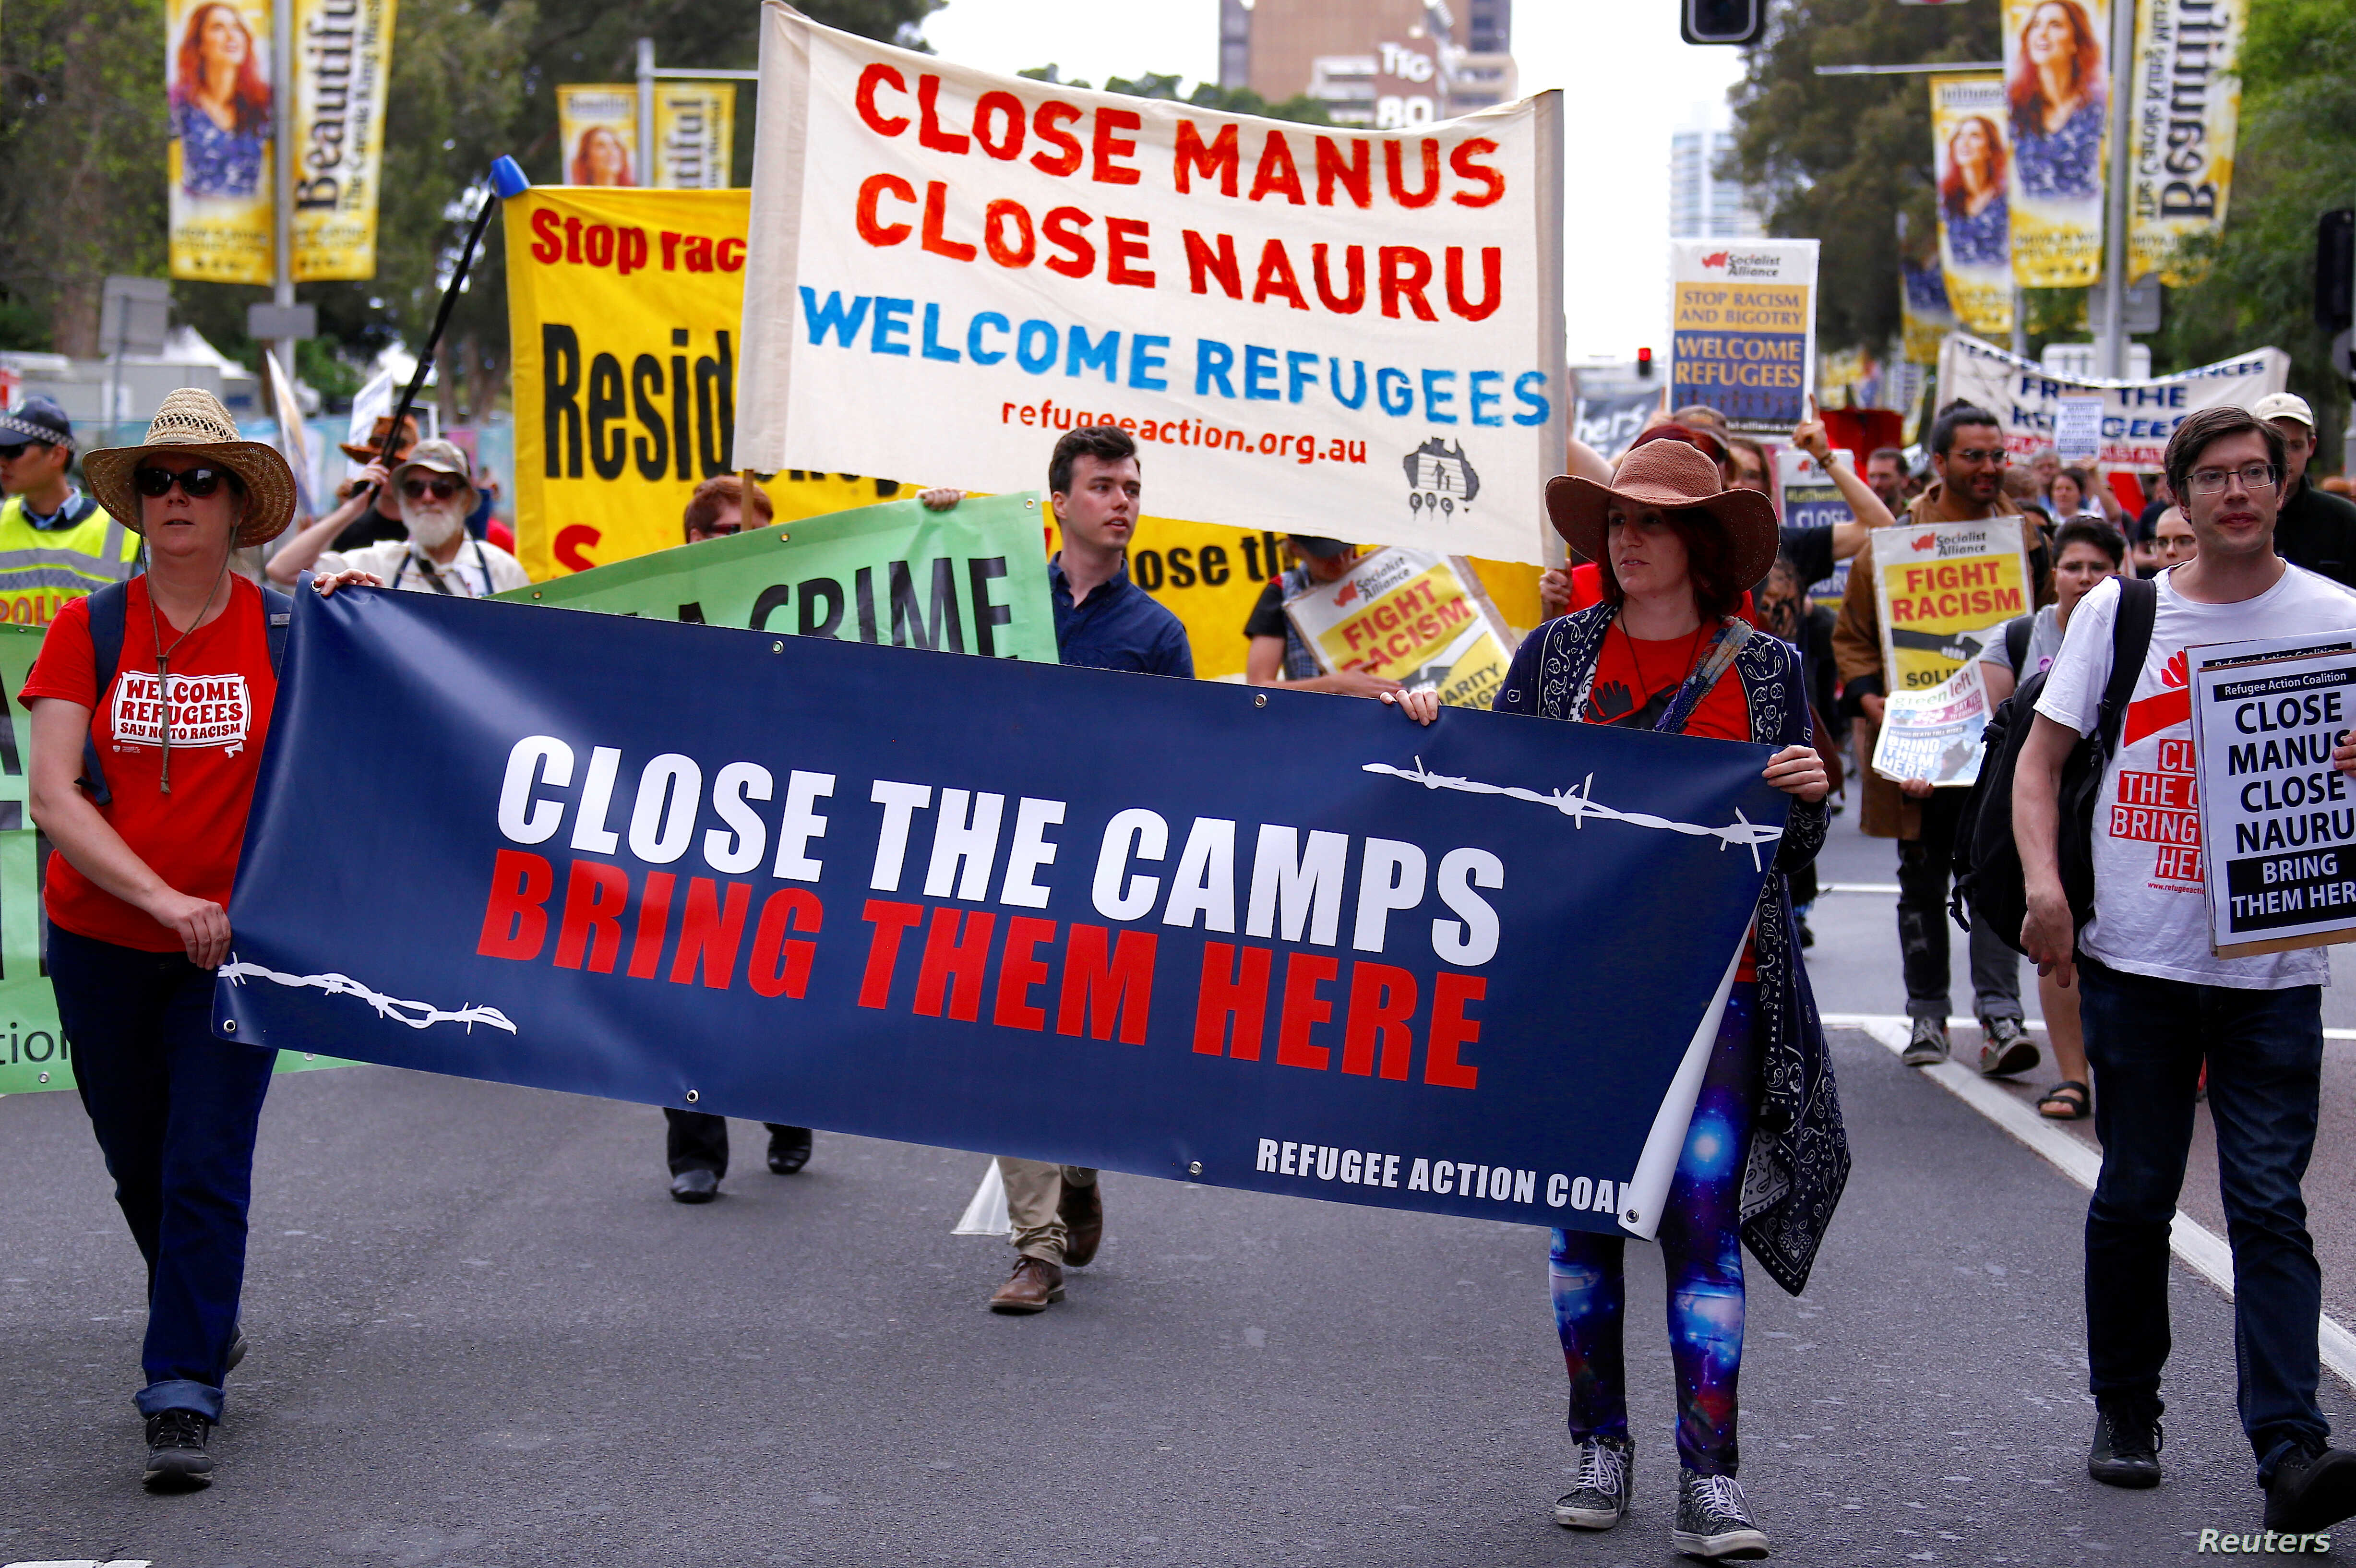 Refugee advocates protest in Sydney, Oct. 15, 2017, against the treatment of asylum-seekers in detention centers in Nauru and on Manus Island.